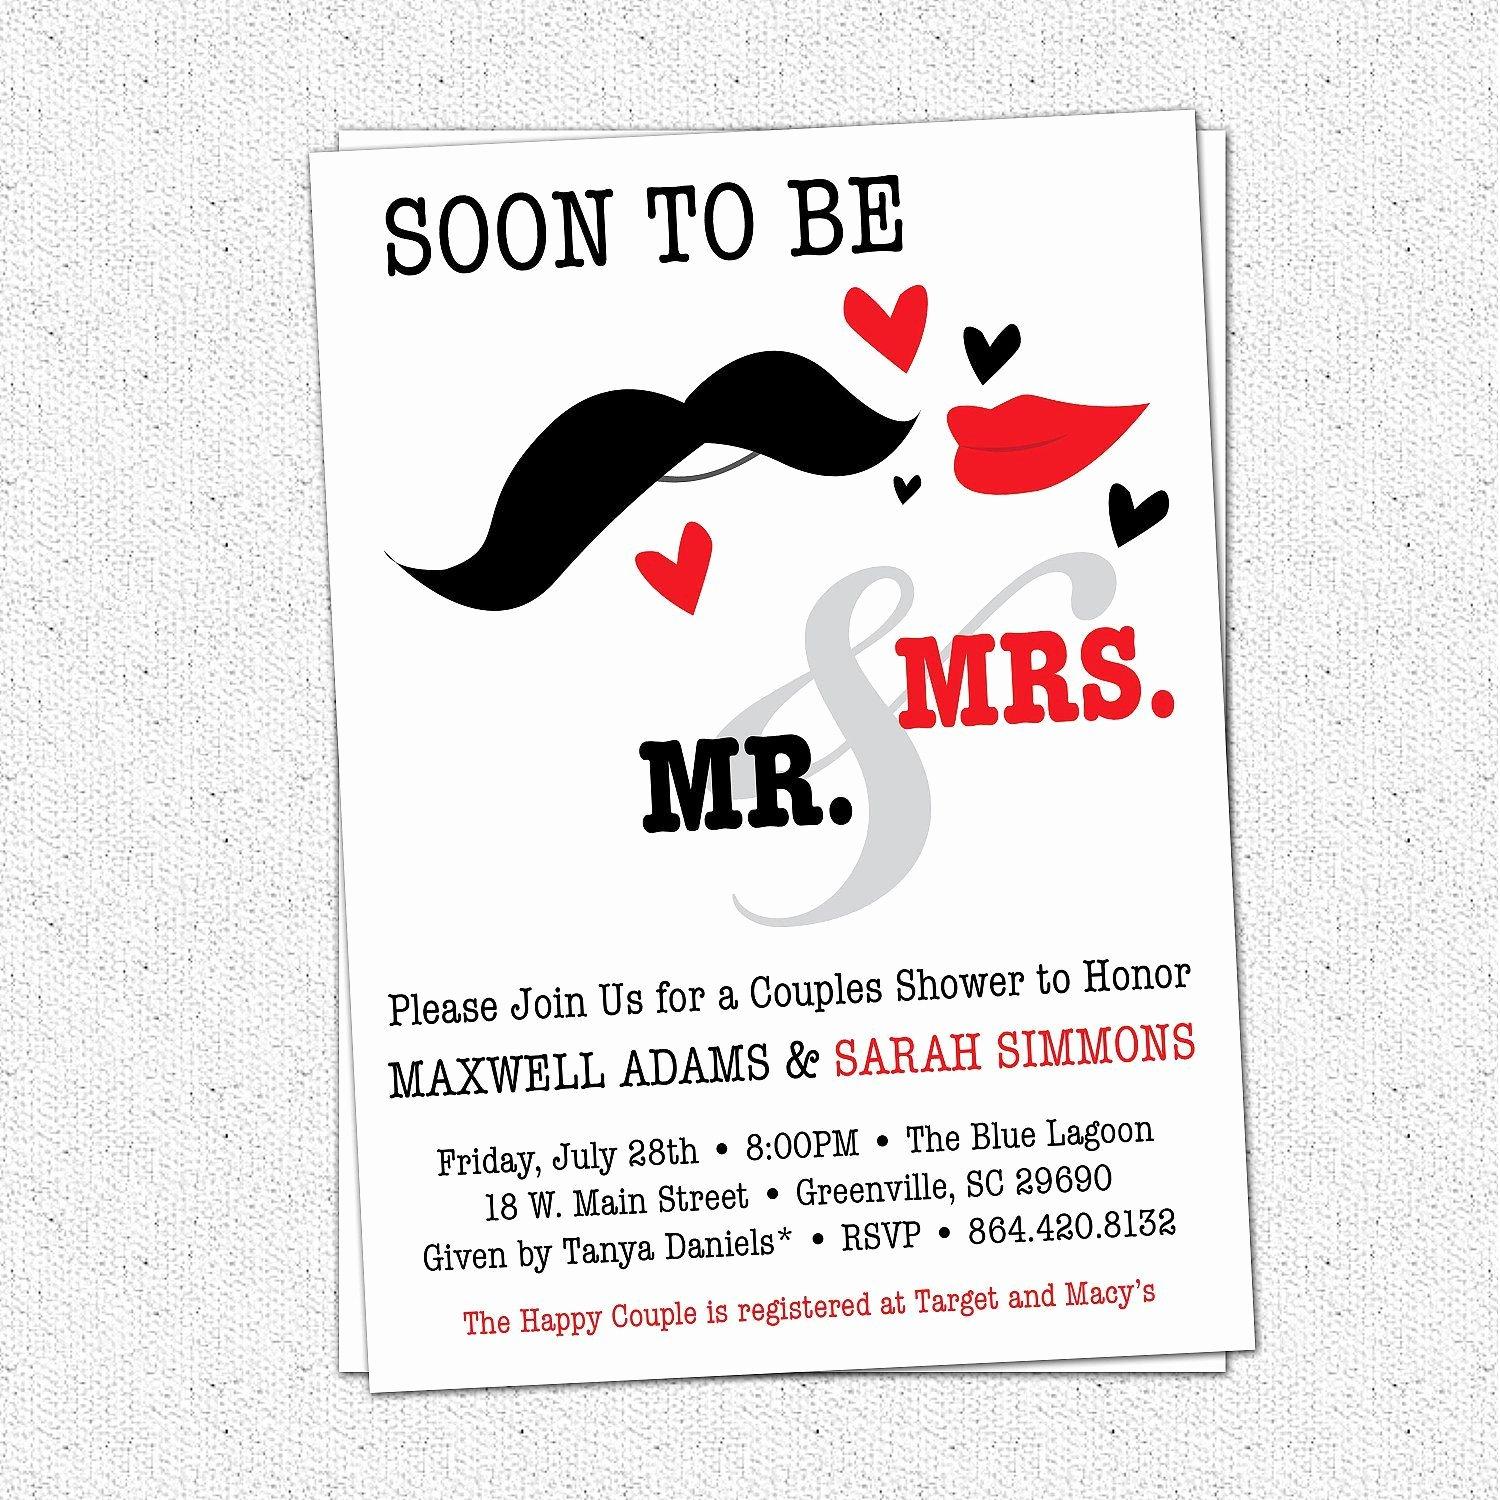 Couples Shower Invitations Template Lovely Couples Wedding Shower Invitations Templates Free M